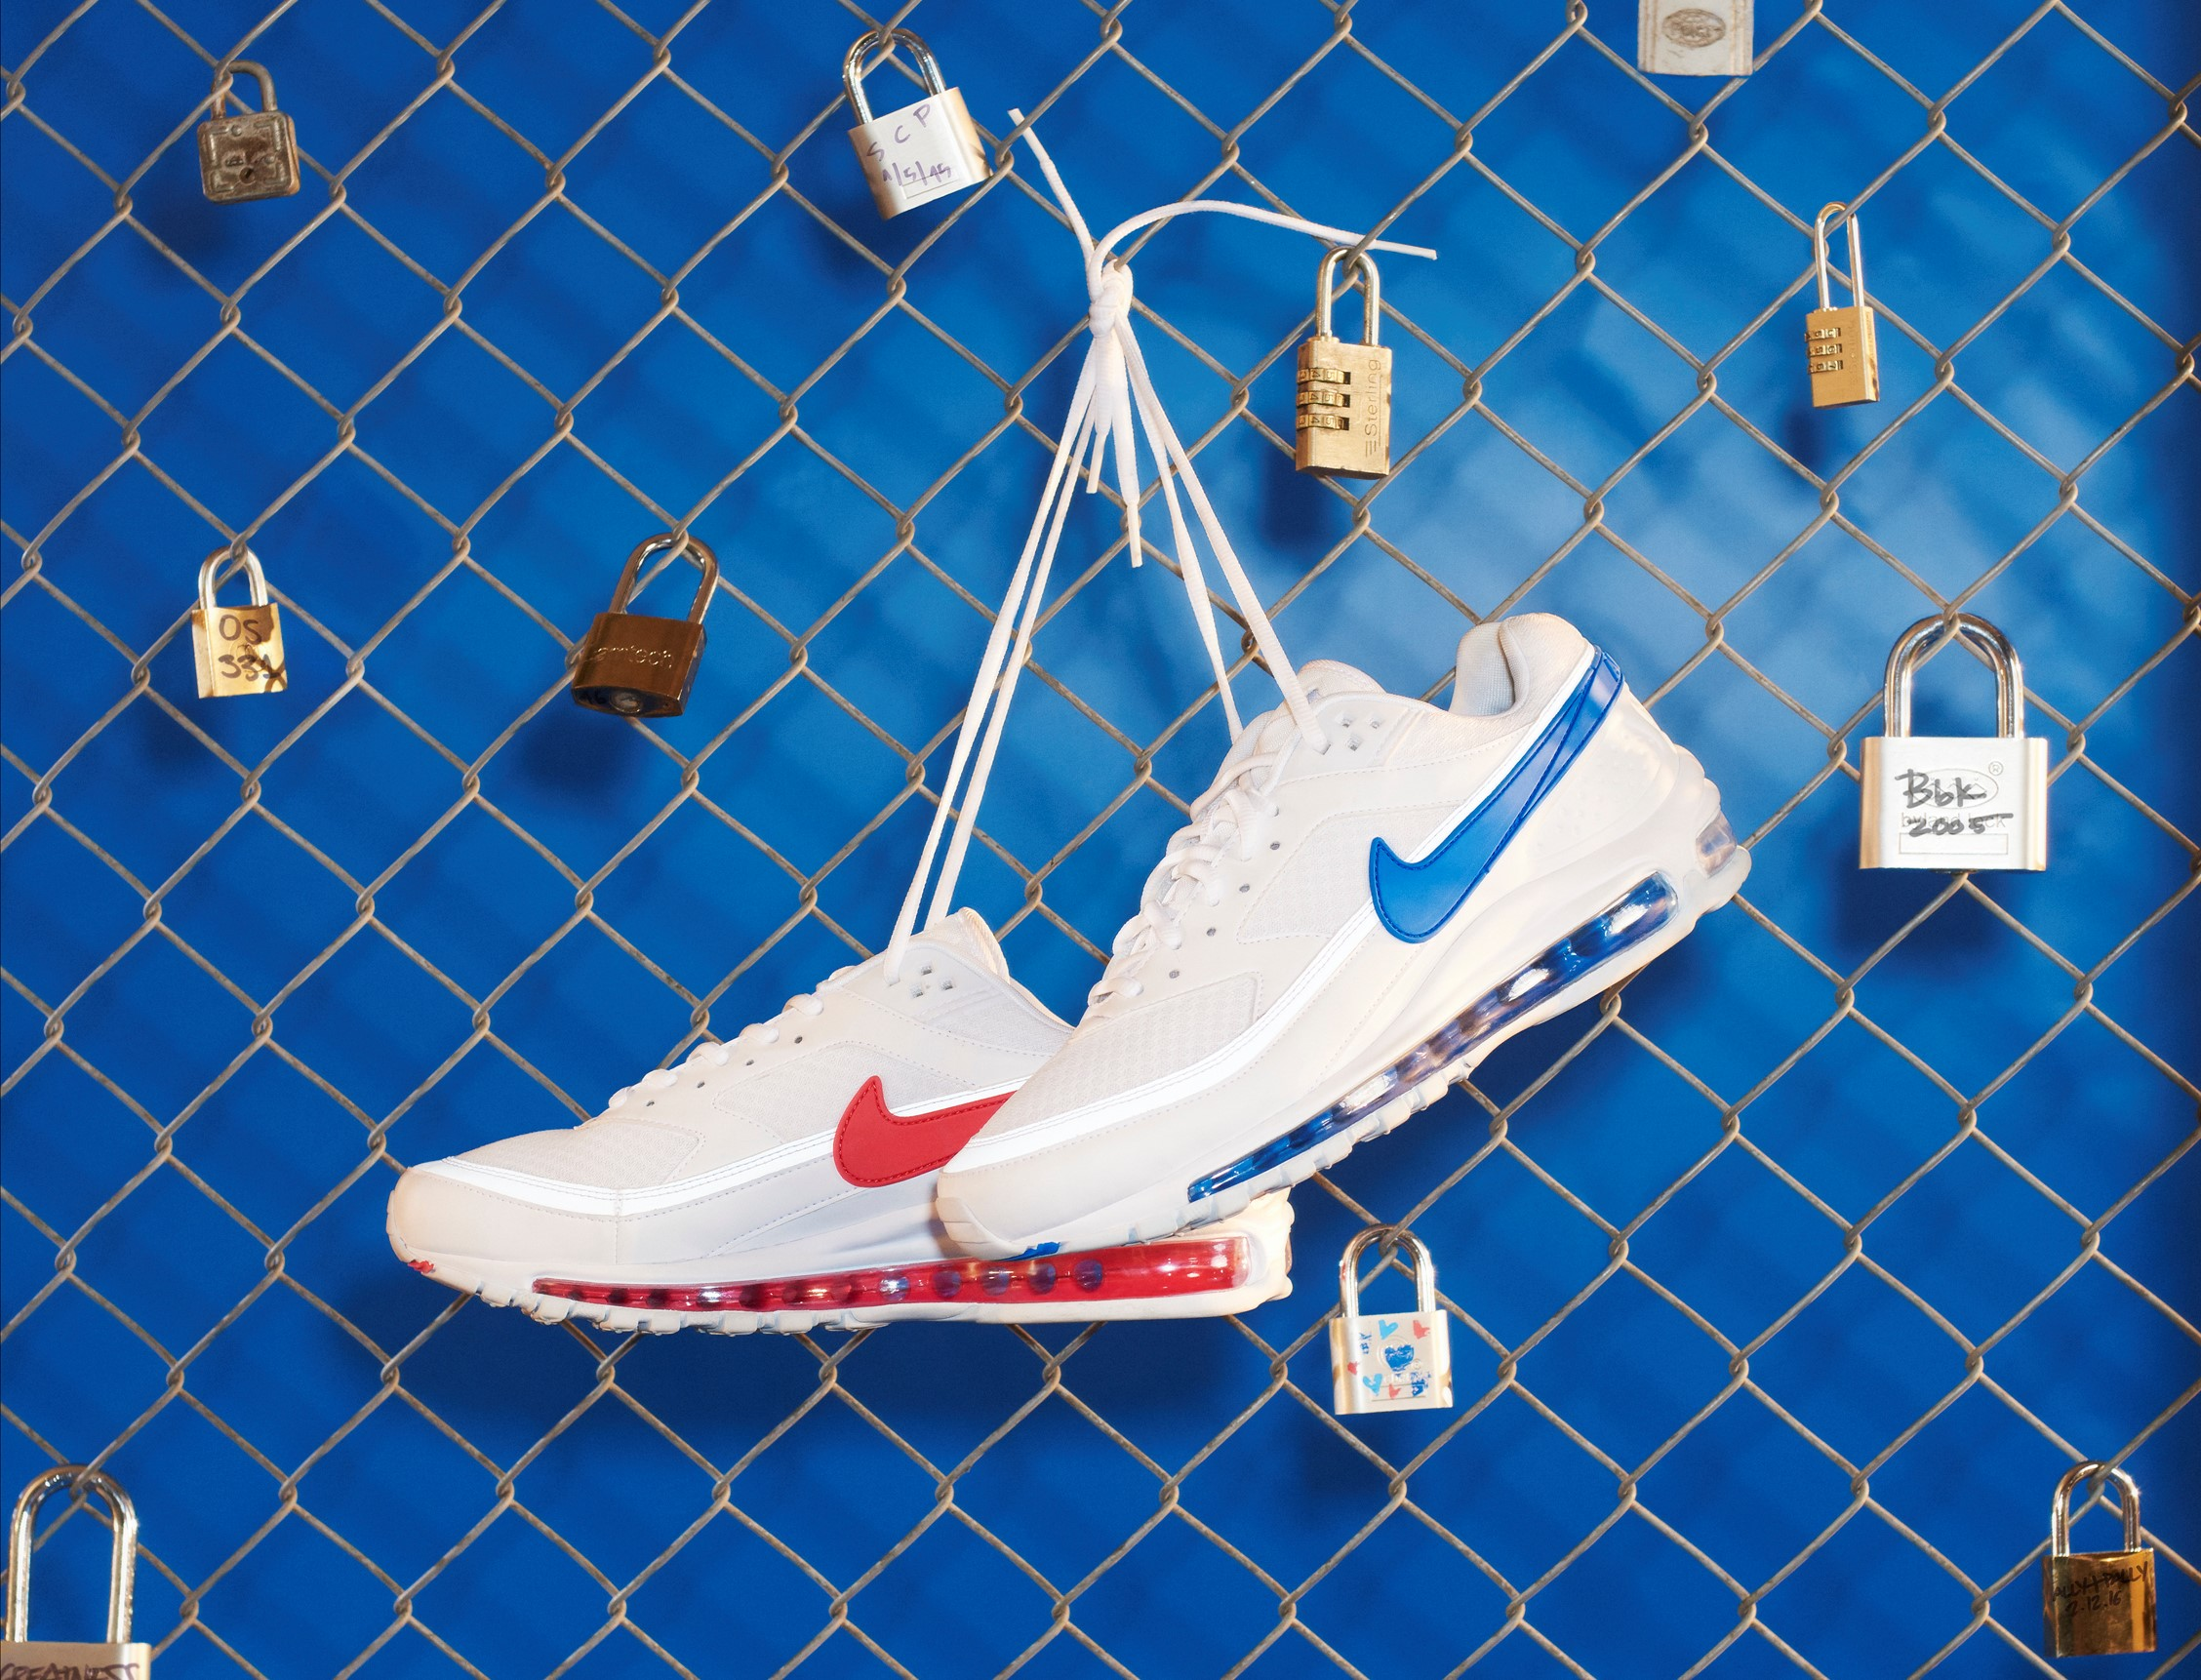 The Skepta Air Max 97BW SK Aims to Connect Paris and London